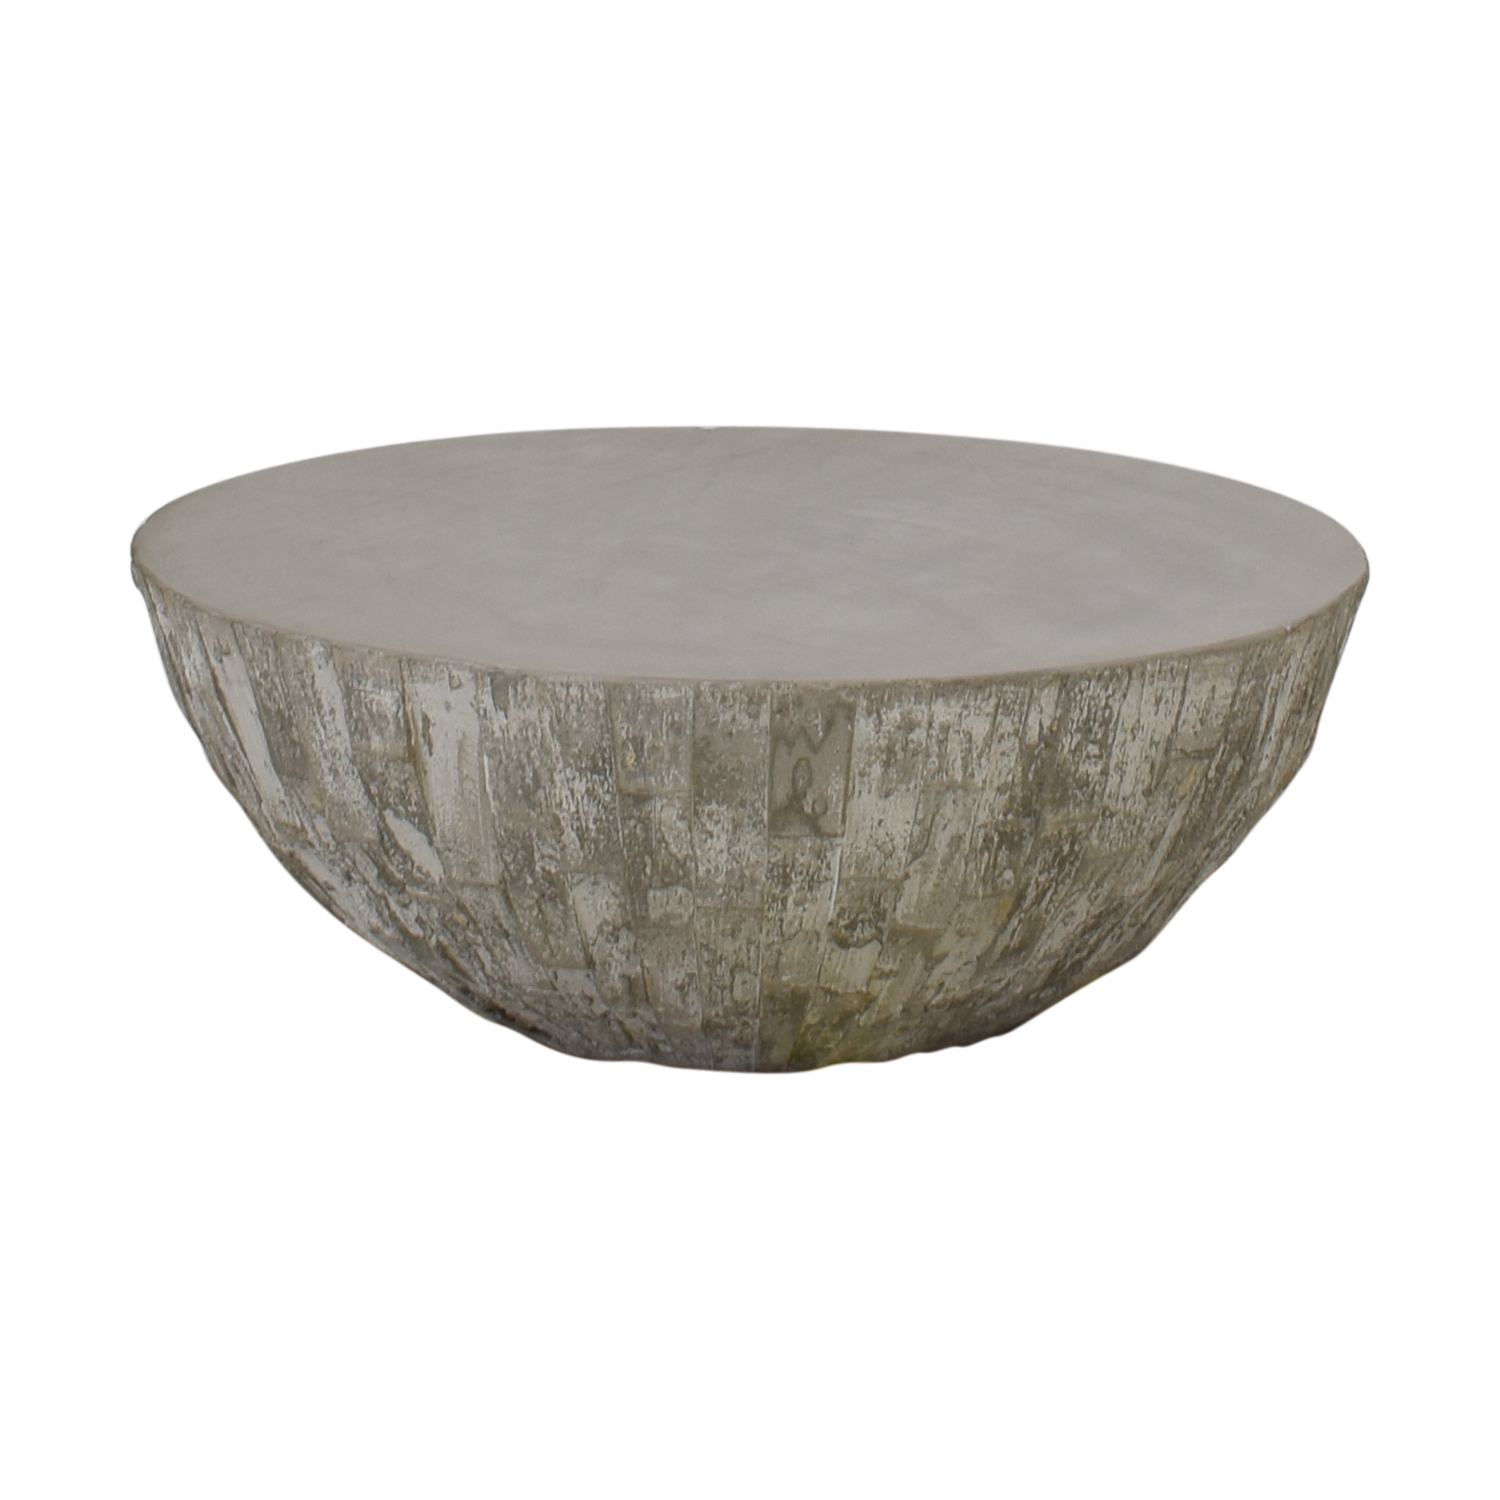 West Elm West Elm Concrete Drum Coffee Table price